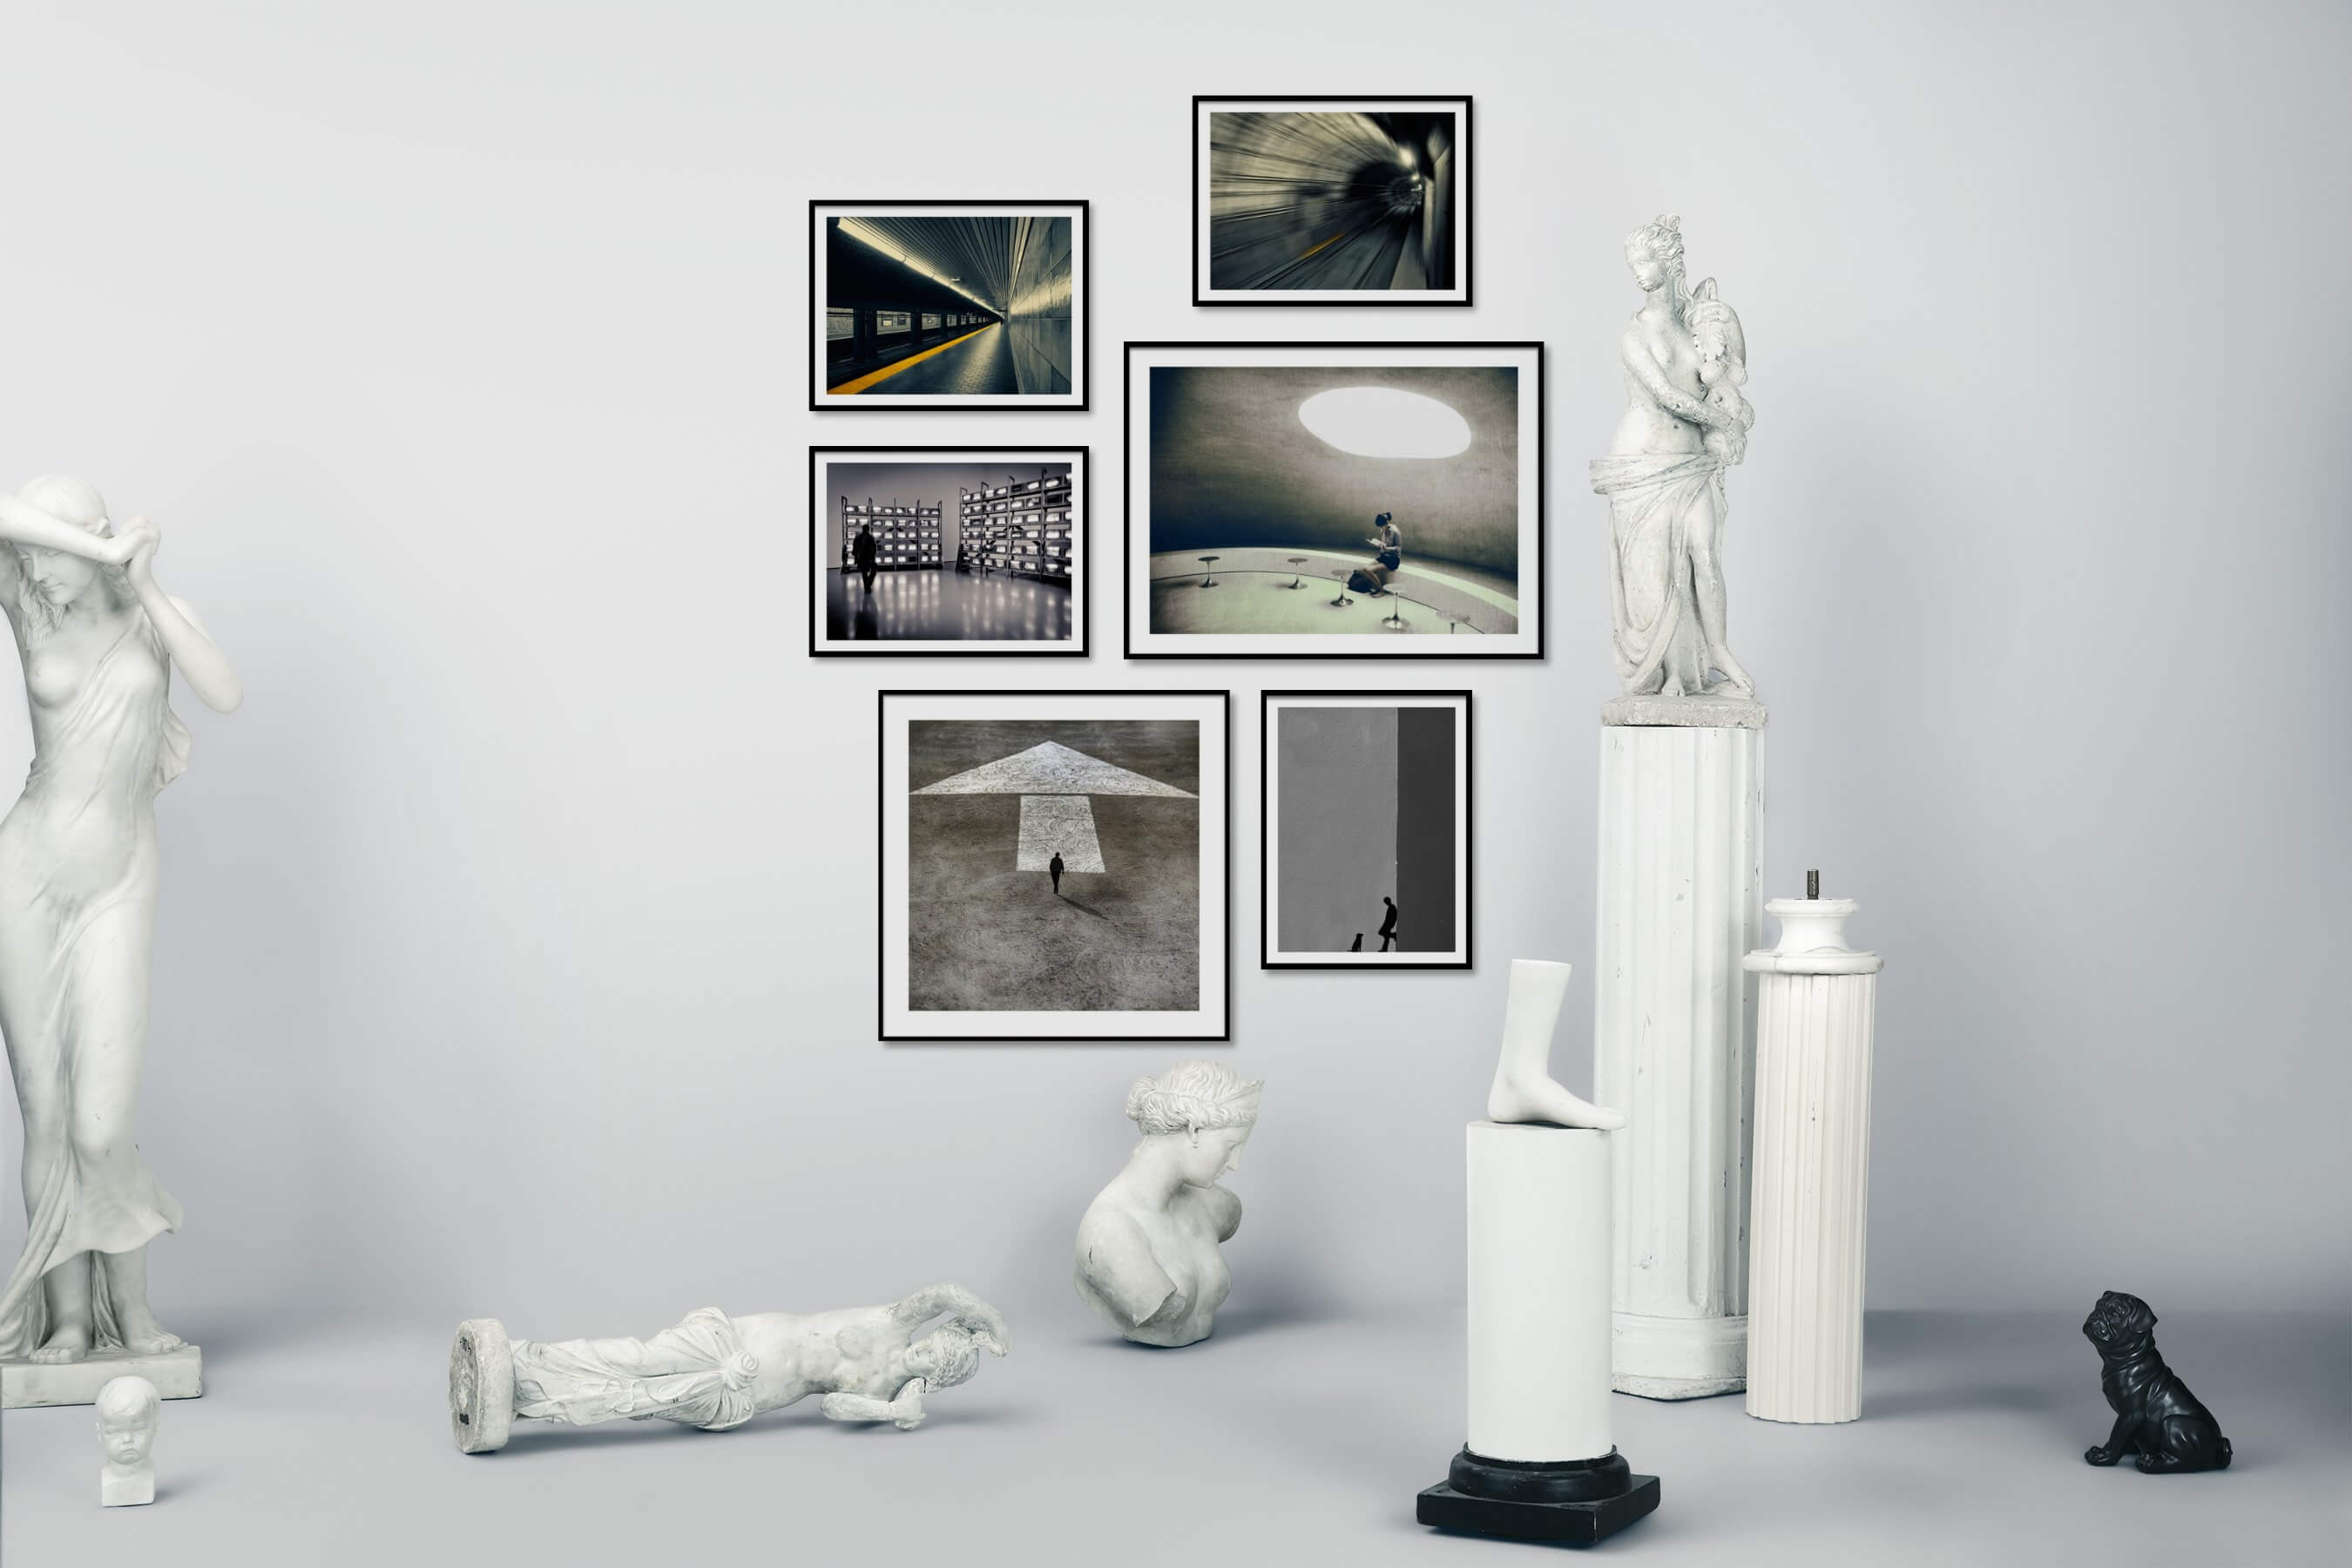 Gallery wall idea with six framed pictures arranged on a wall depicting City Life, For the Moderate, Artsy, Black & White, and For the Minimalist